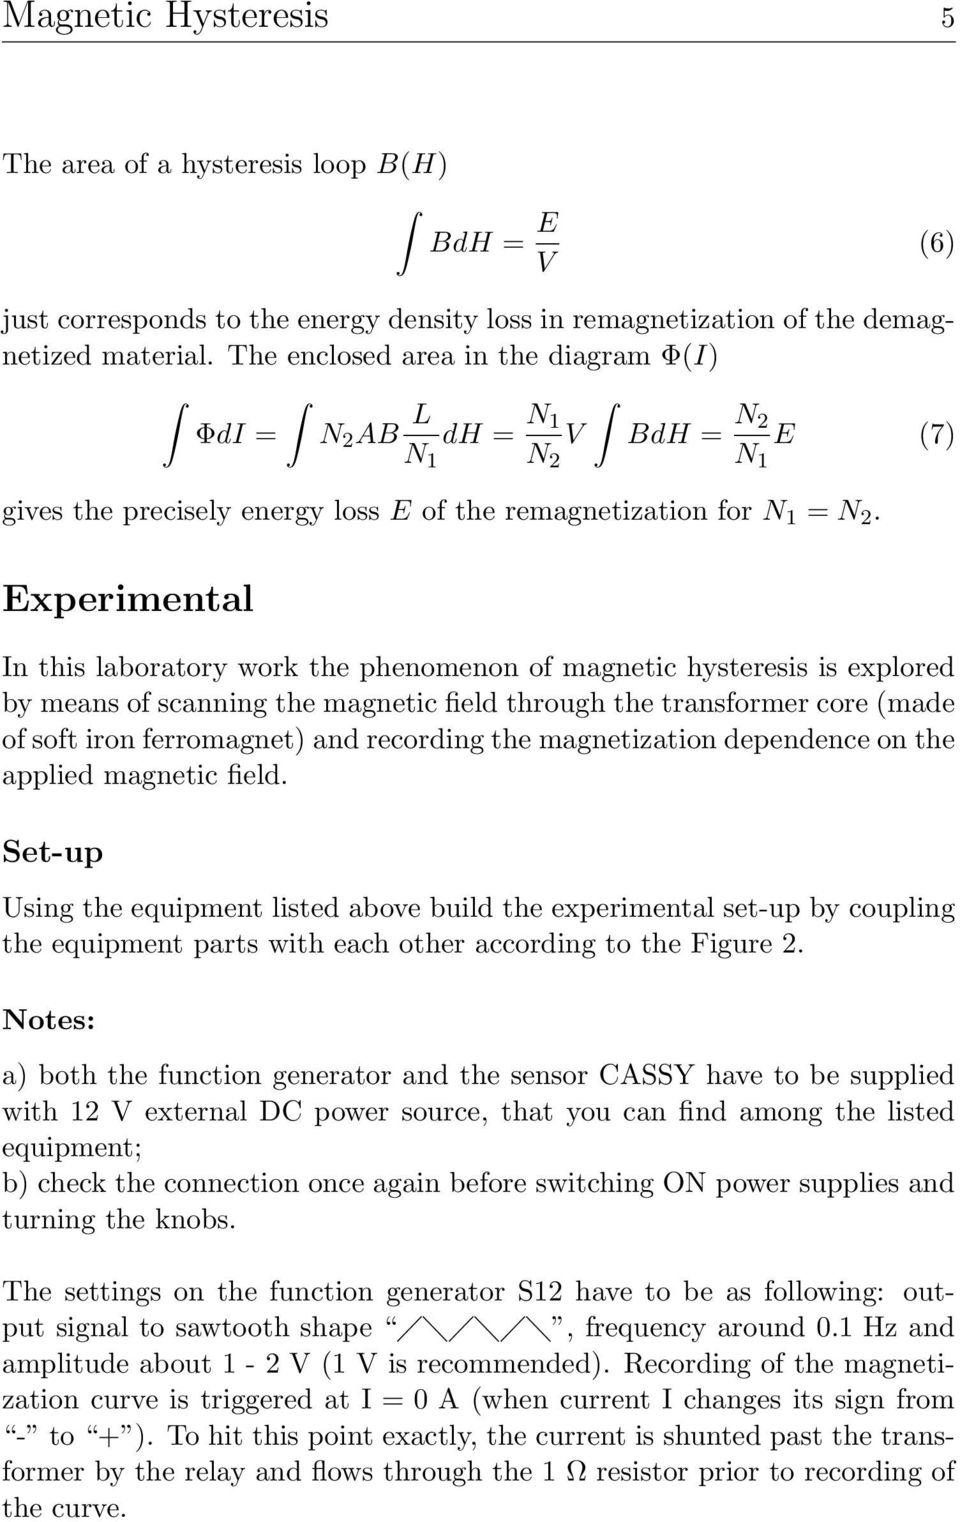 Em4 Magnetic Hysteresis Pdf Magneticfieldsensorconnections Electronicslab Experimental In This Laboratory Work The Phenomenon Of Is Explored By Means Scanning